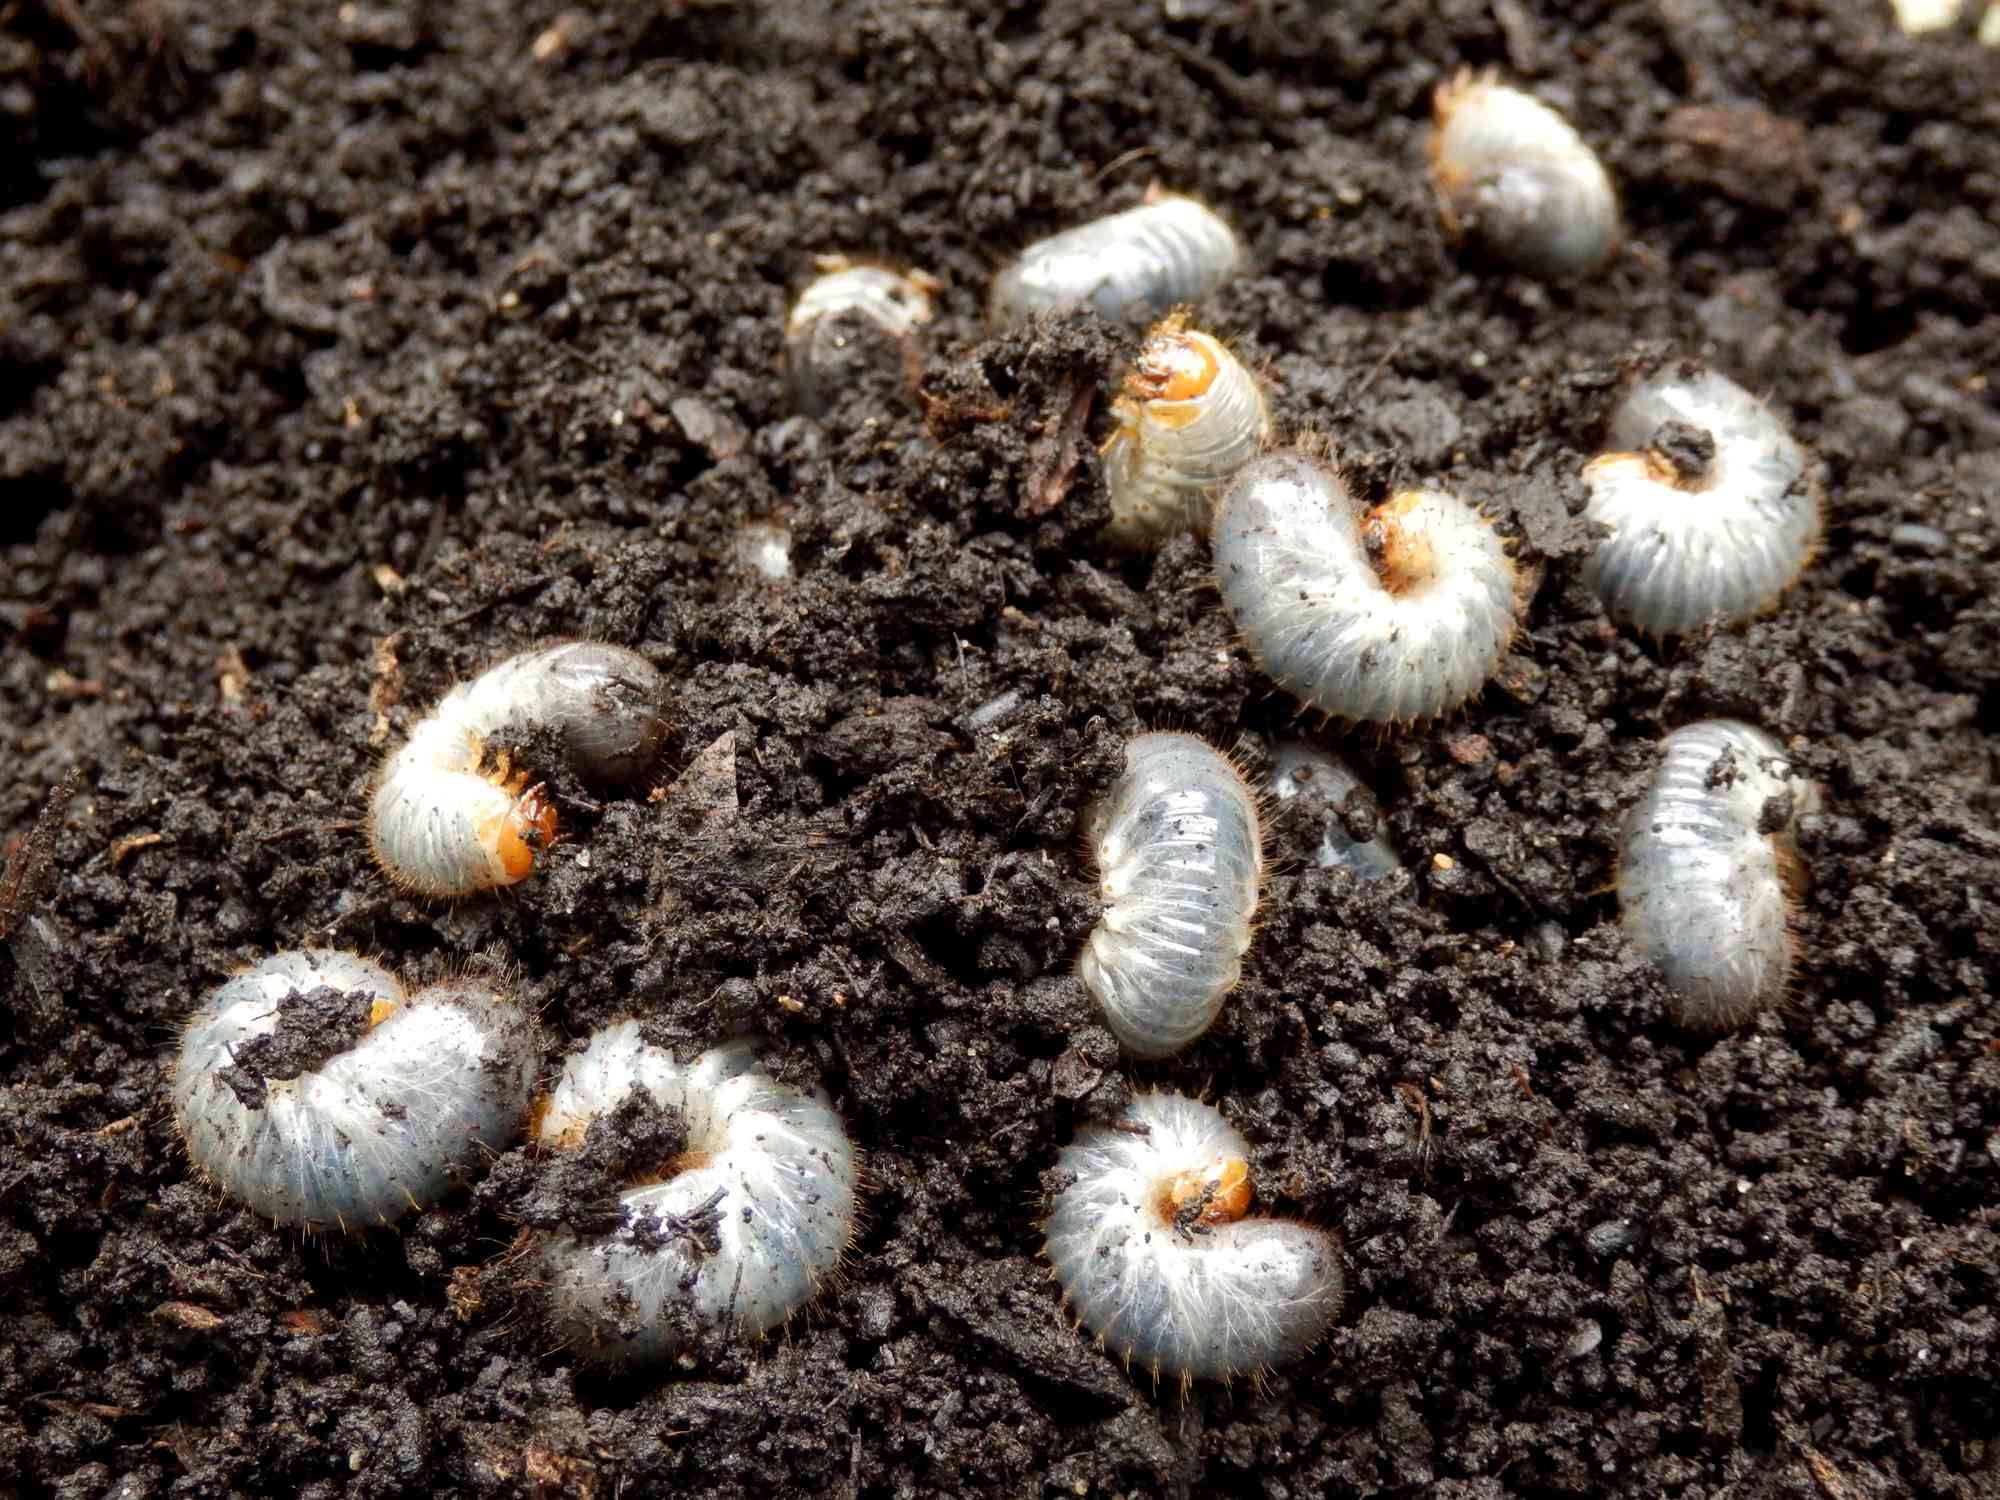 Several grubs of a chafer beetle in the dirt